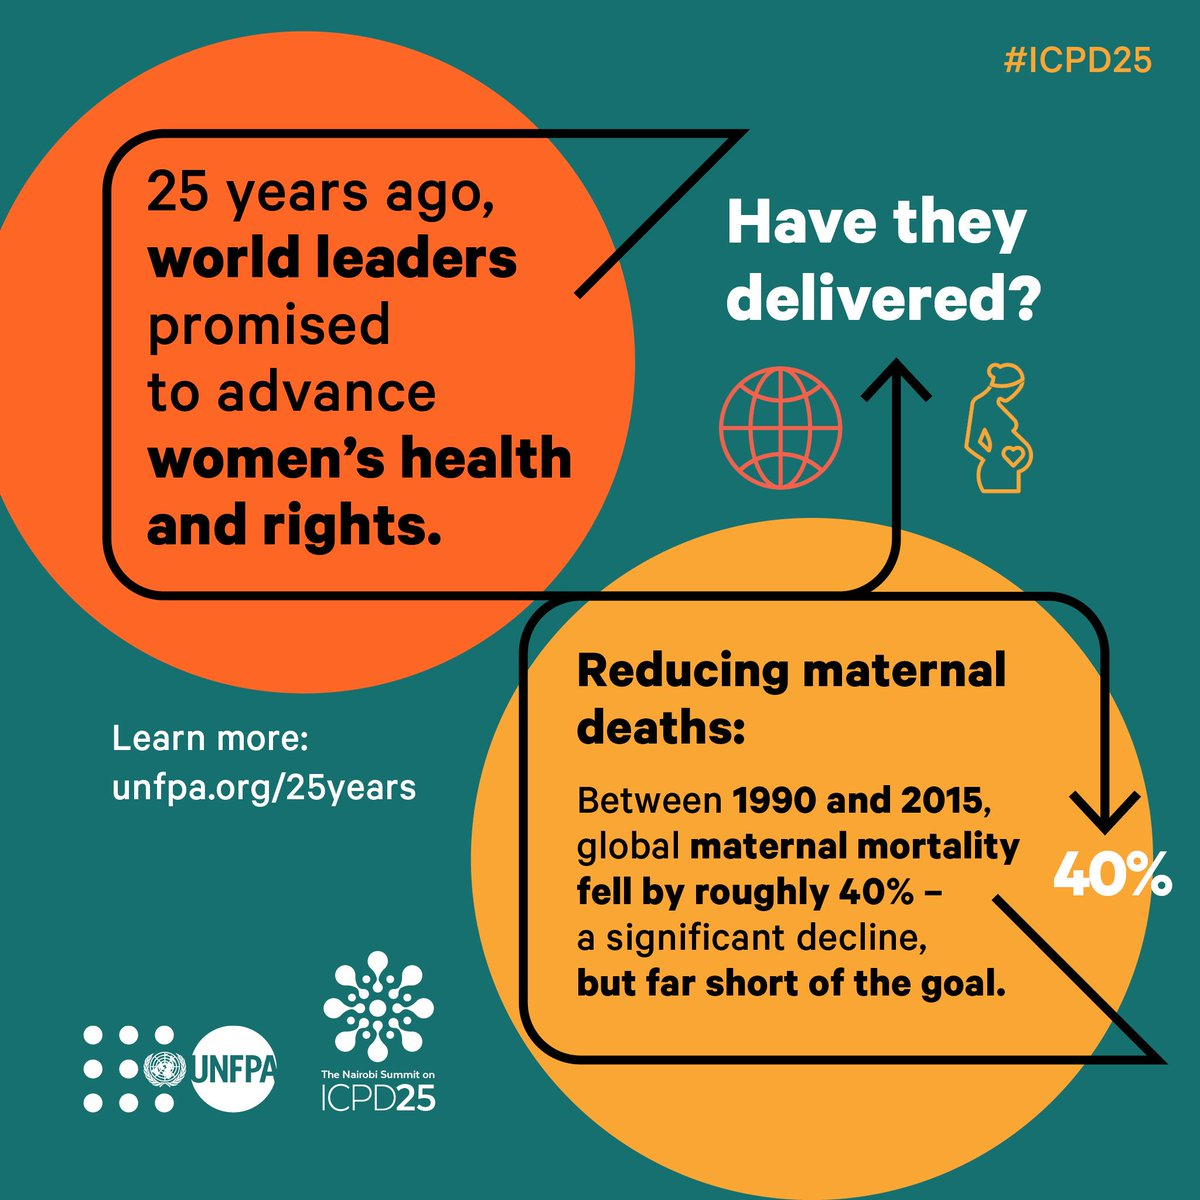 Over the last 25 years only 9 countries were able to reduce maternal deaths by at least 75%.On #WorldPopulationDay, @UNFPA is calling on every country to #StandUp4HumanRights and end maternal deaths. http://unfpa.org/25years